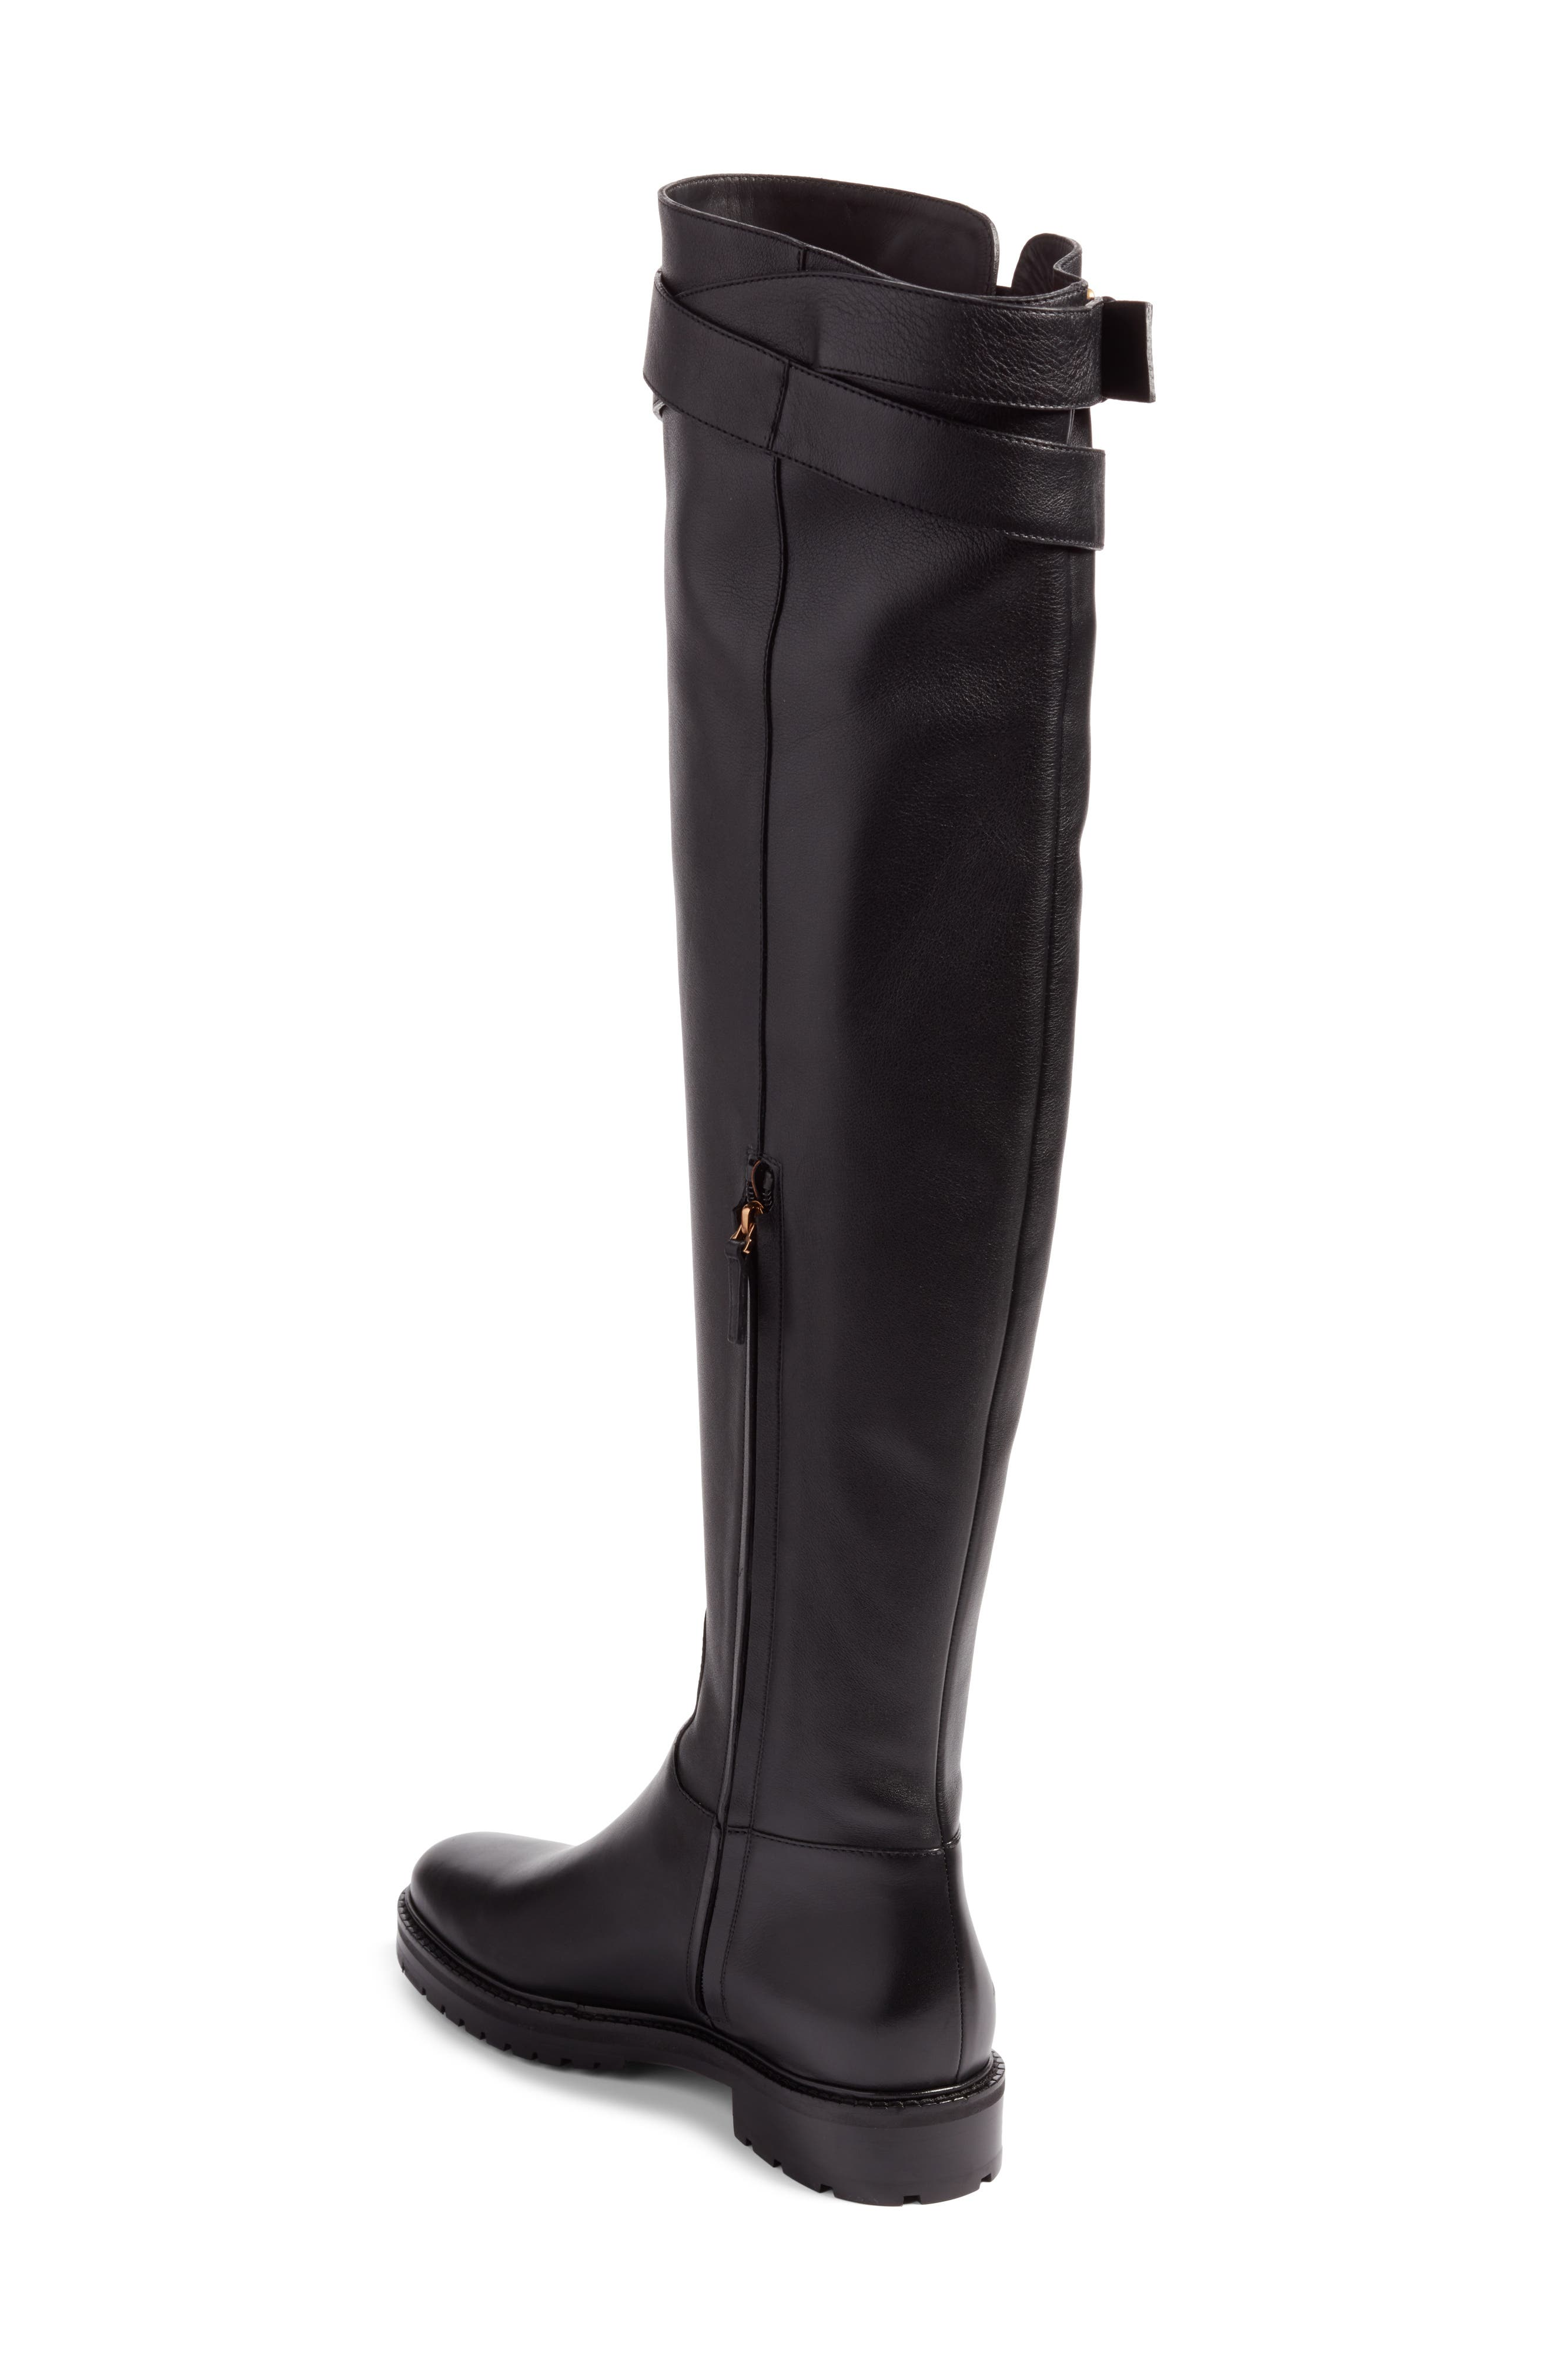 Bowrap Over the Knee Boot,                             Alternate thumbnail 2, color,                             001